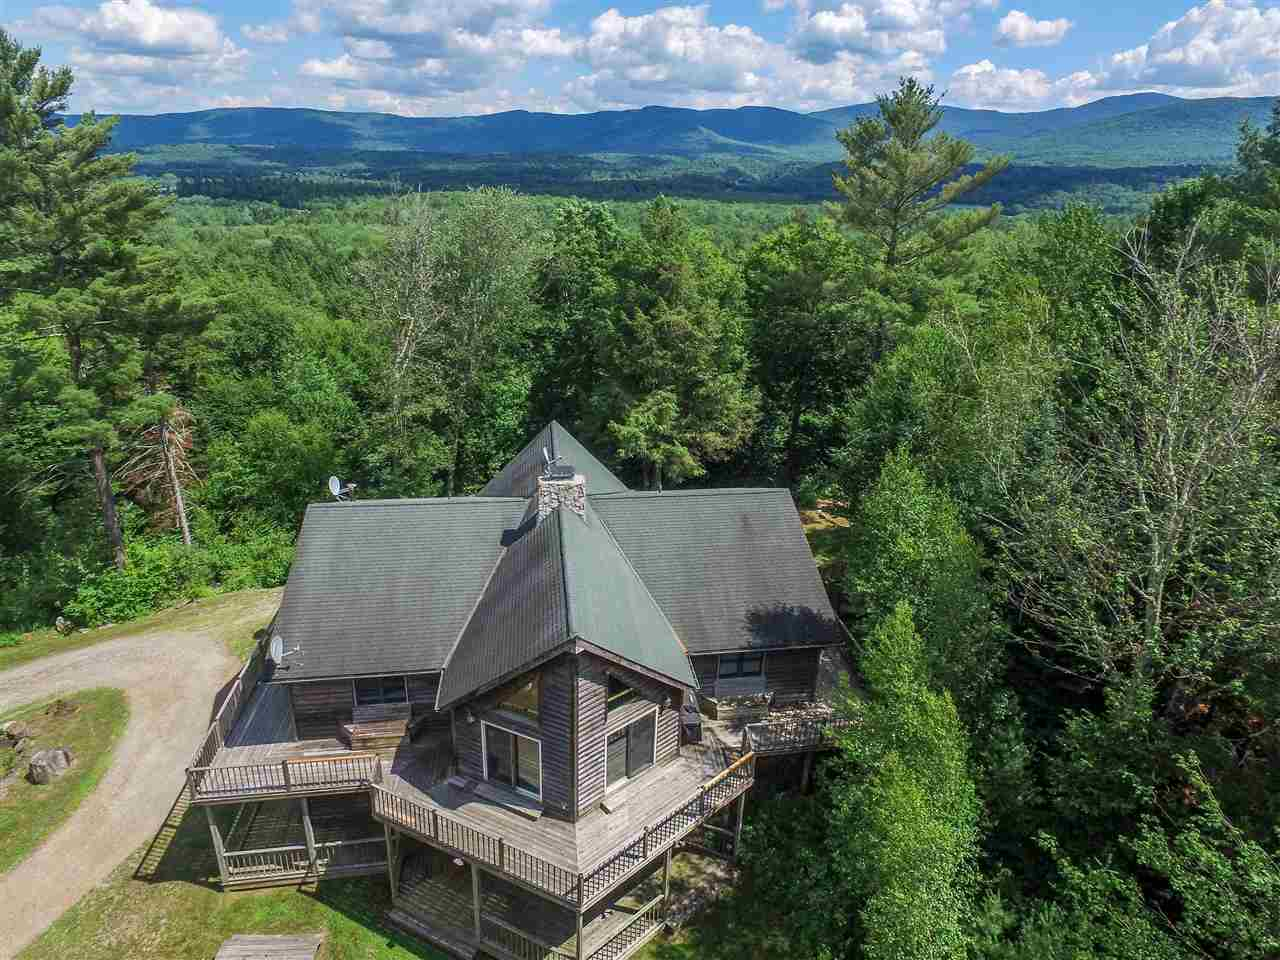 Property for sale at 5217 Stagecoach Road, Morristown,  Vermont 05661